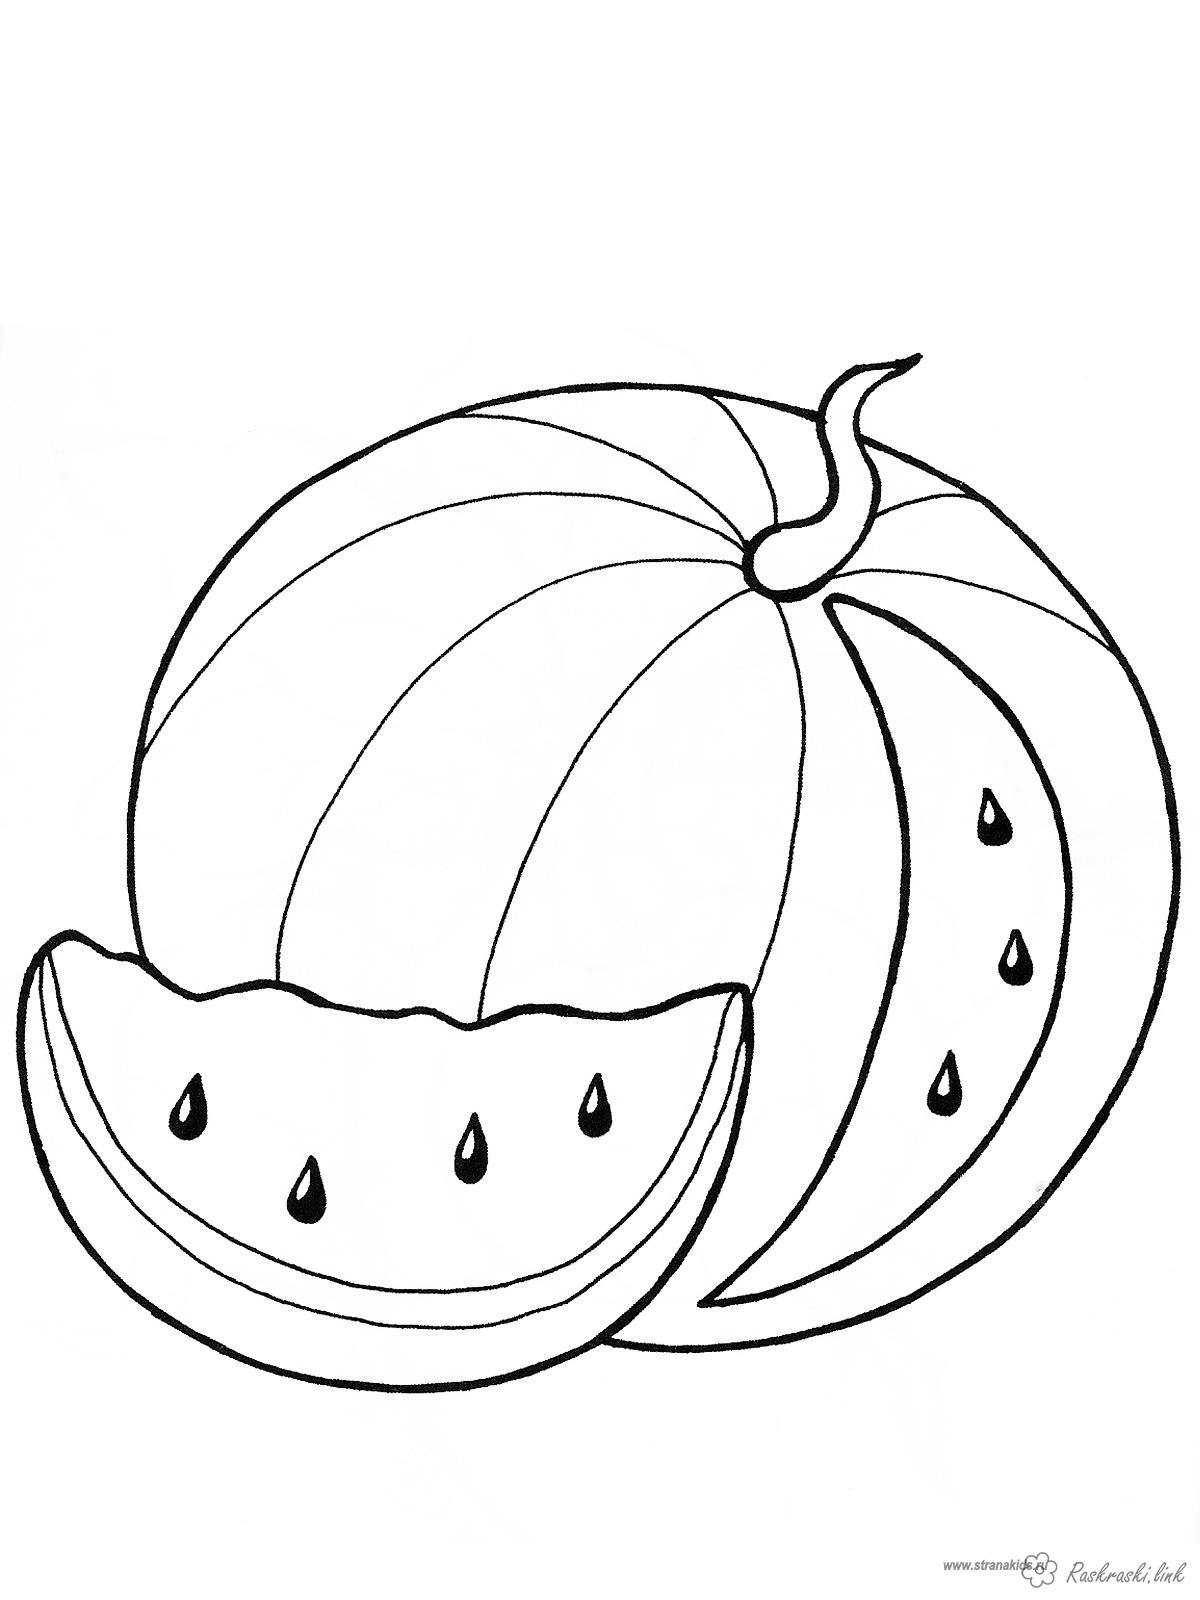 coloring pages aesthetic best free printable aesthetic coloring pages for kids aesthetic pages coloring